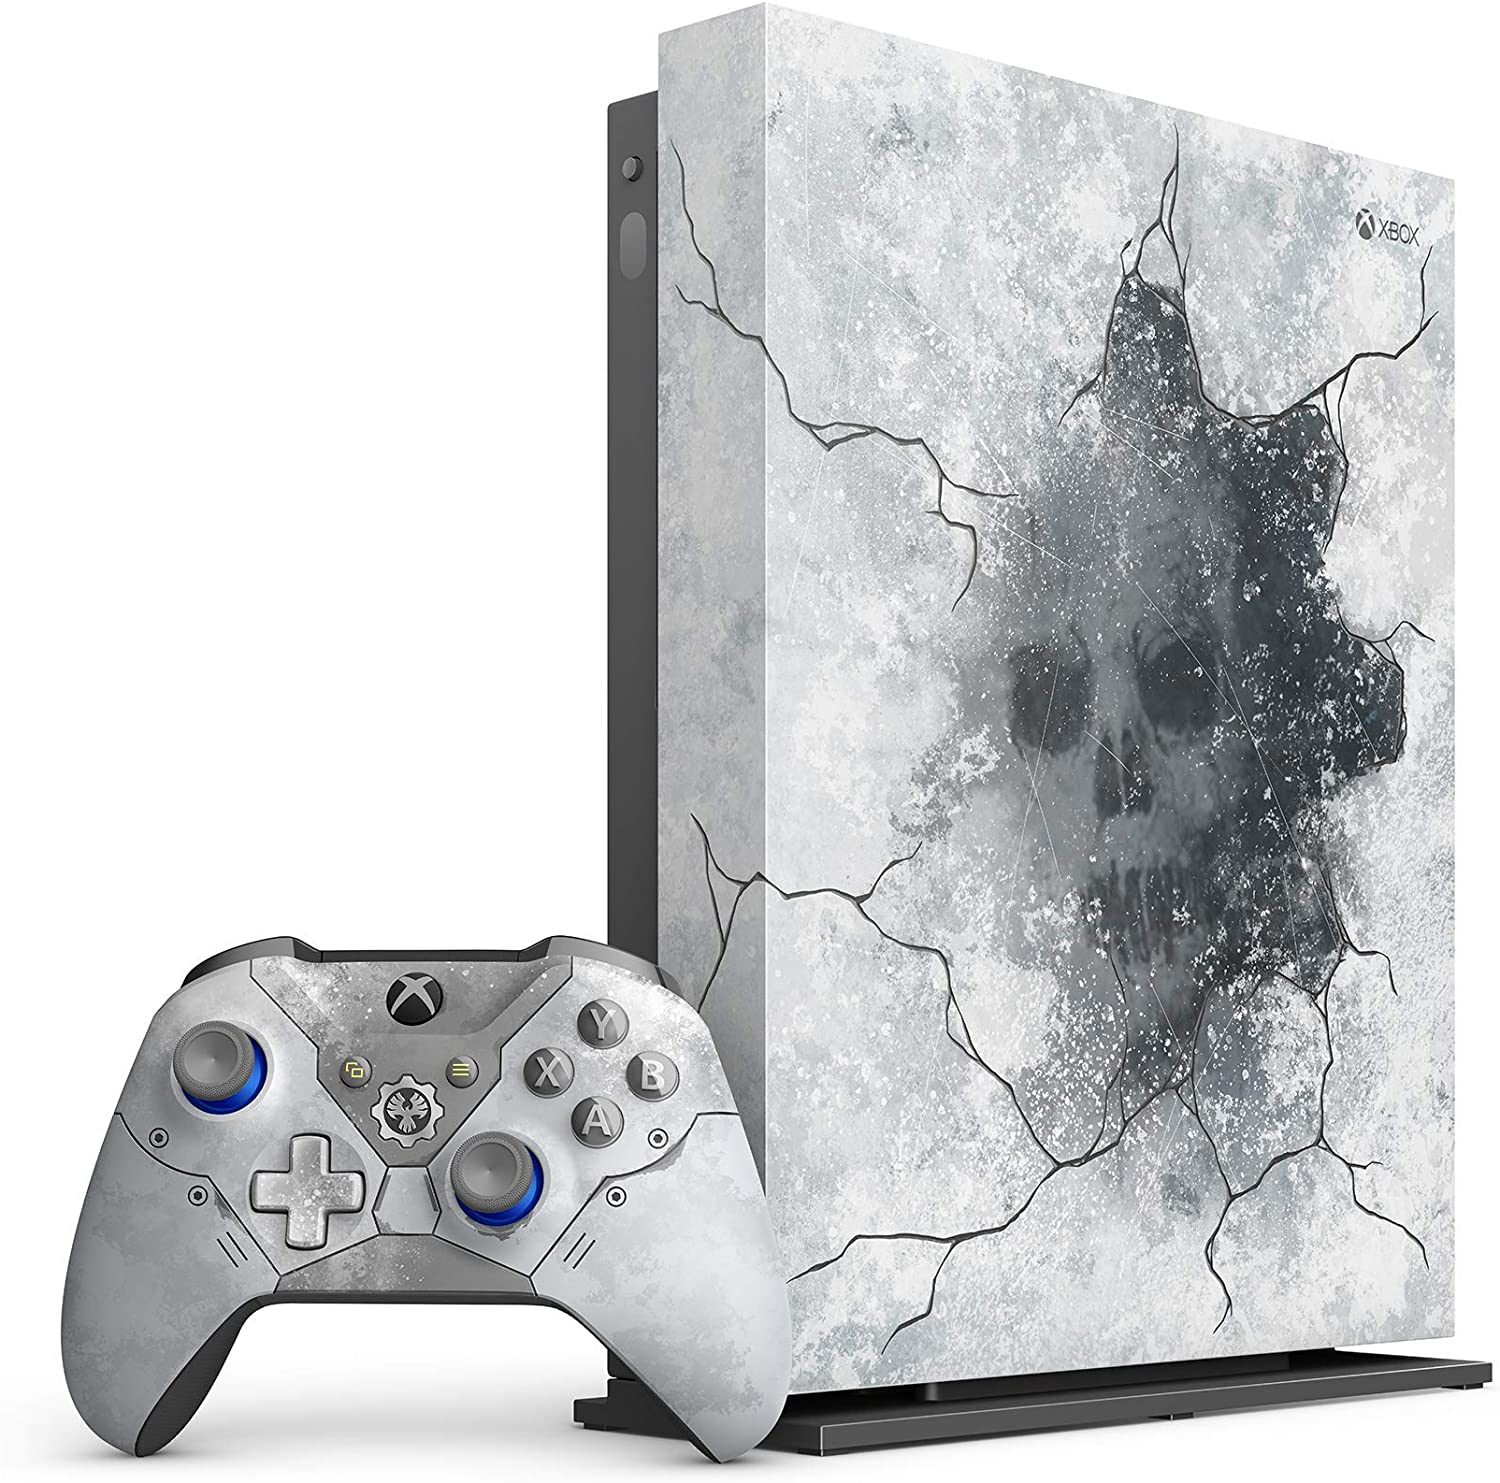 Microsoft - Xbox One X 1TB Gears 5 Limited Edition Arctic Blue Consola con soporte vertical Xbox One X, 1 mes Xbox Live Gold y Game Pass – Juegos no incluidos (enchapado): Amazon.es: Electrónica